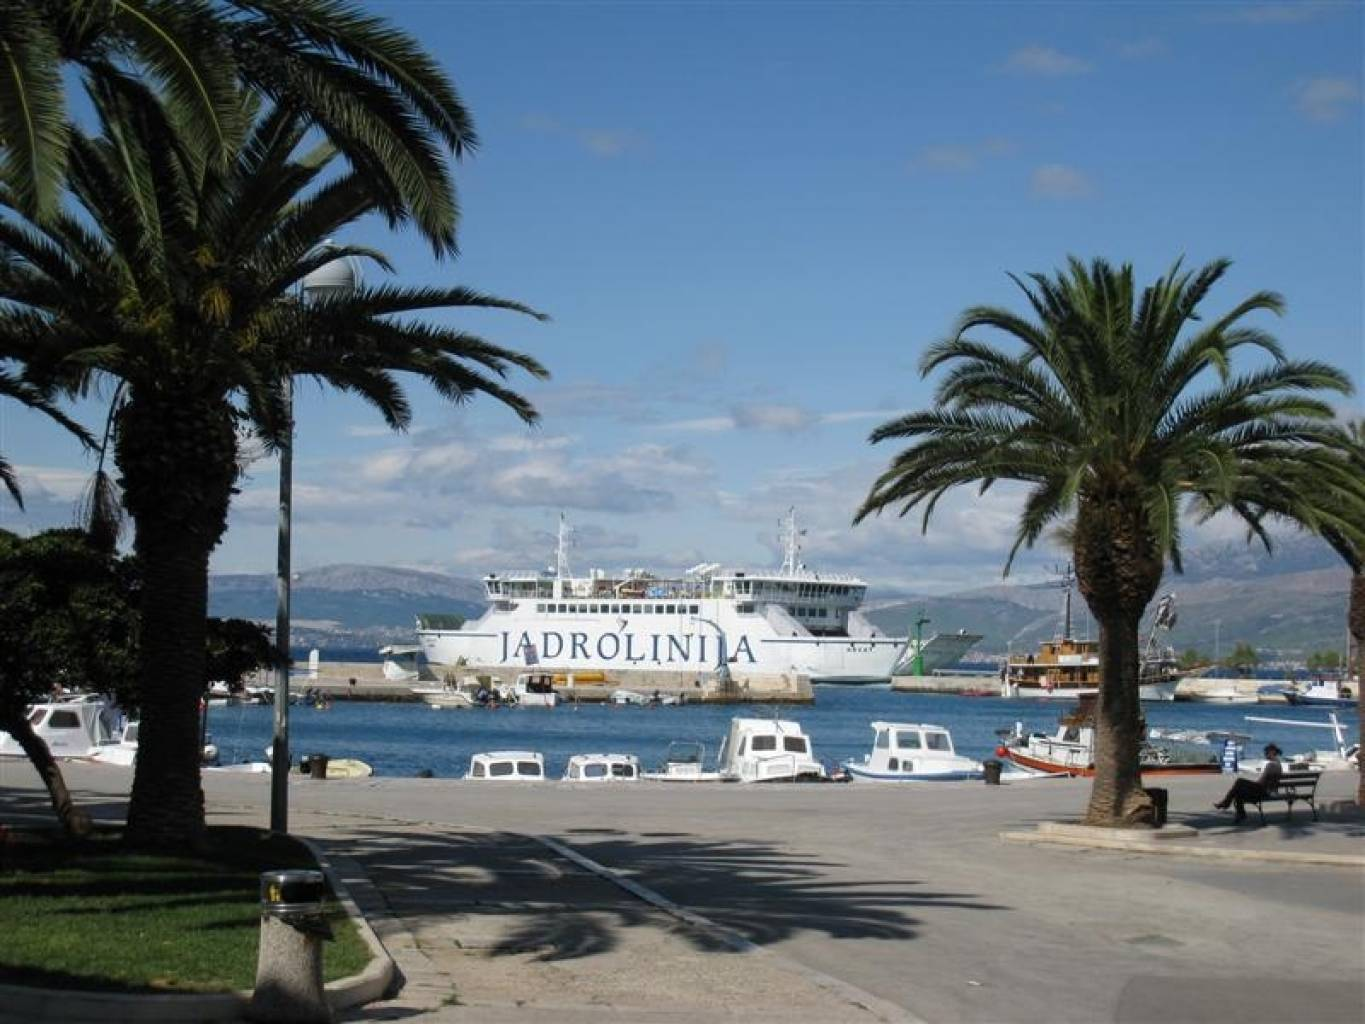 The Jadrolinija car ferry arrives in Supetar, about 100m from the bus stop to Bol